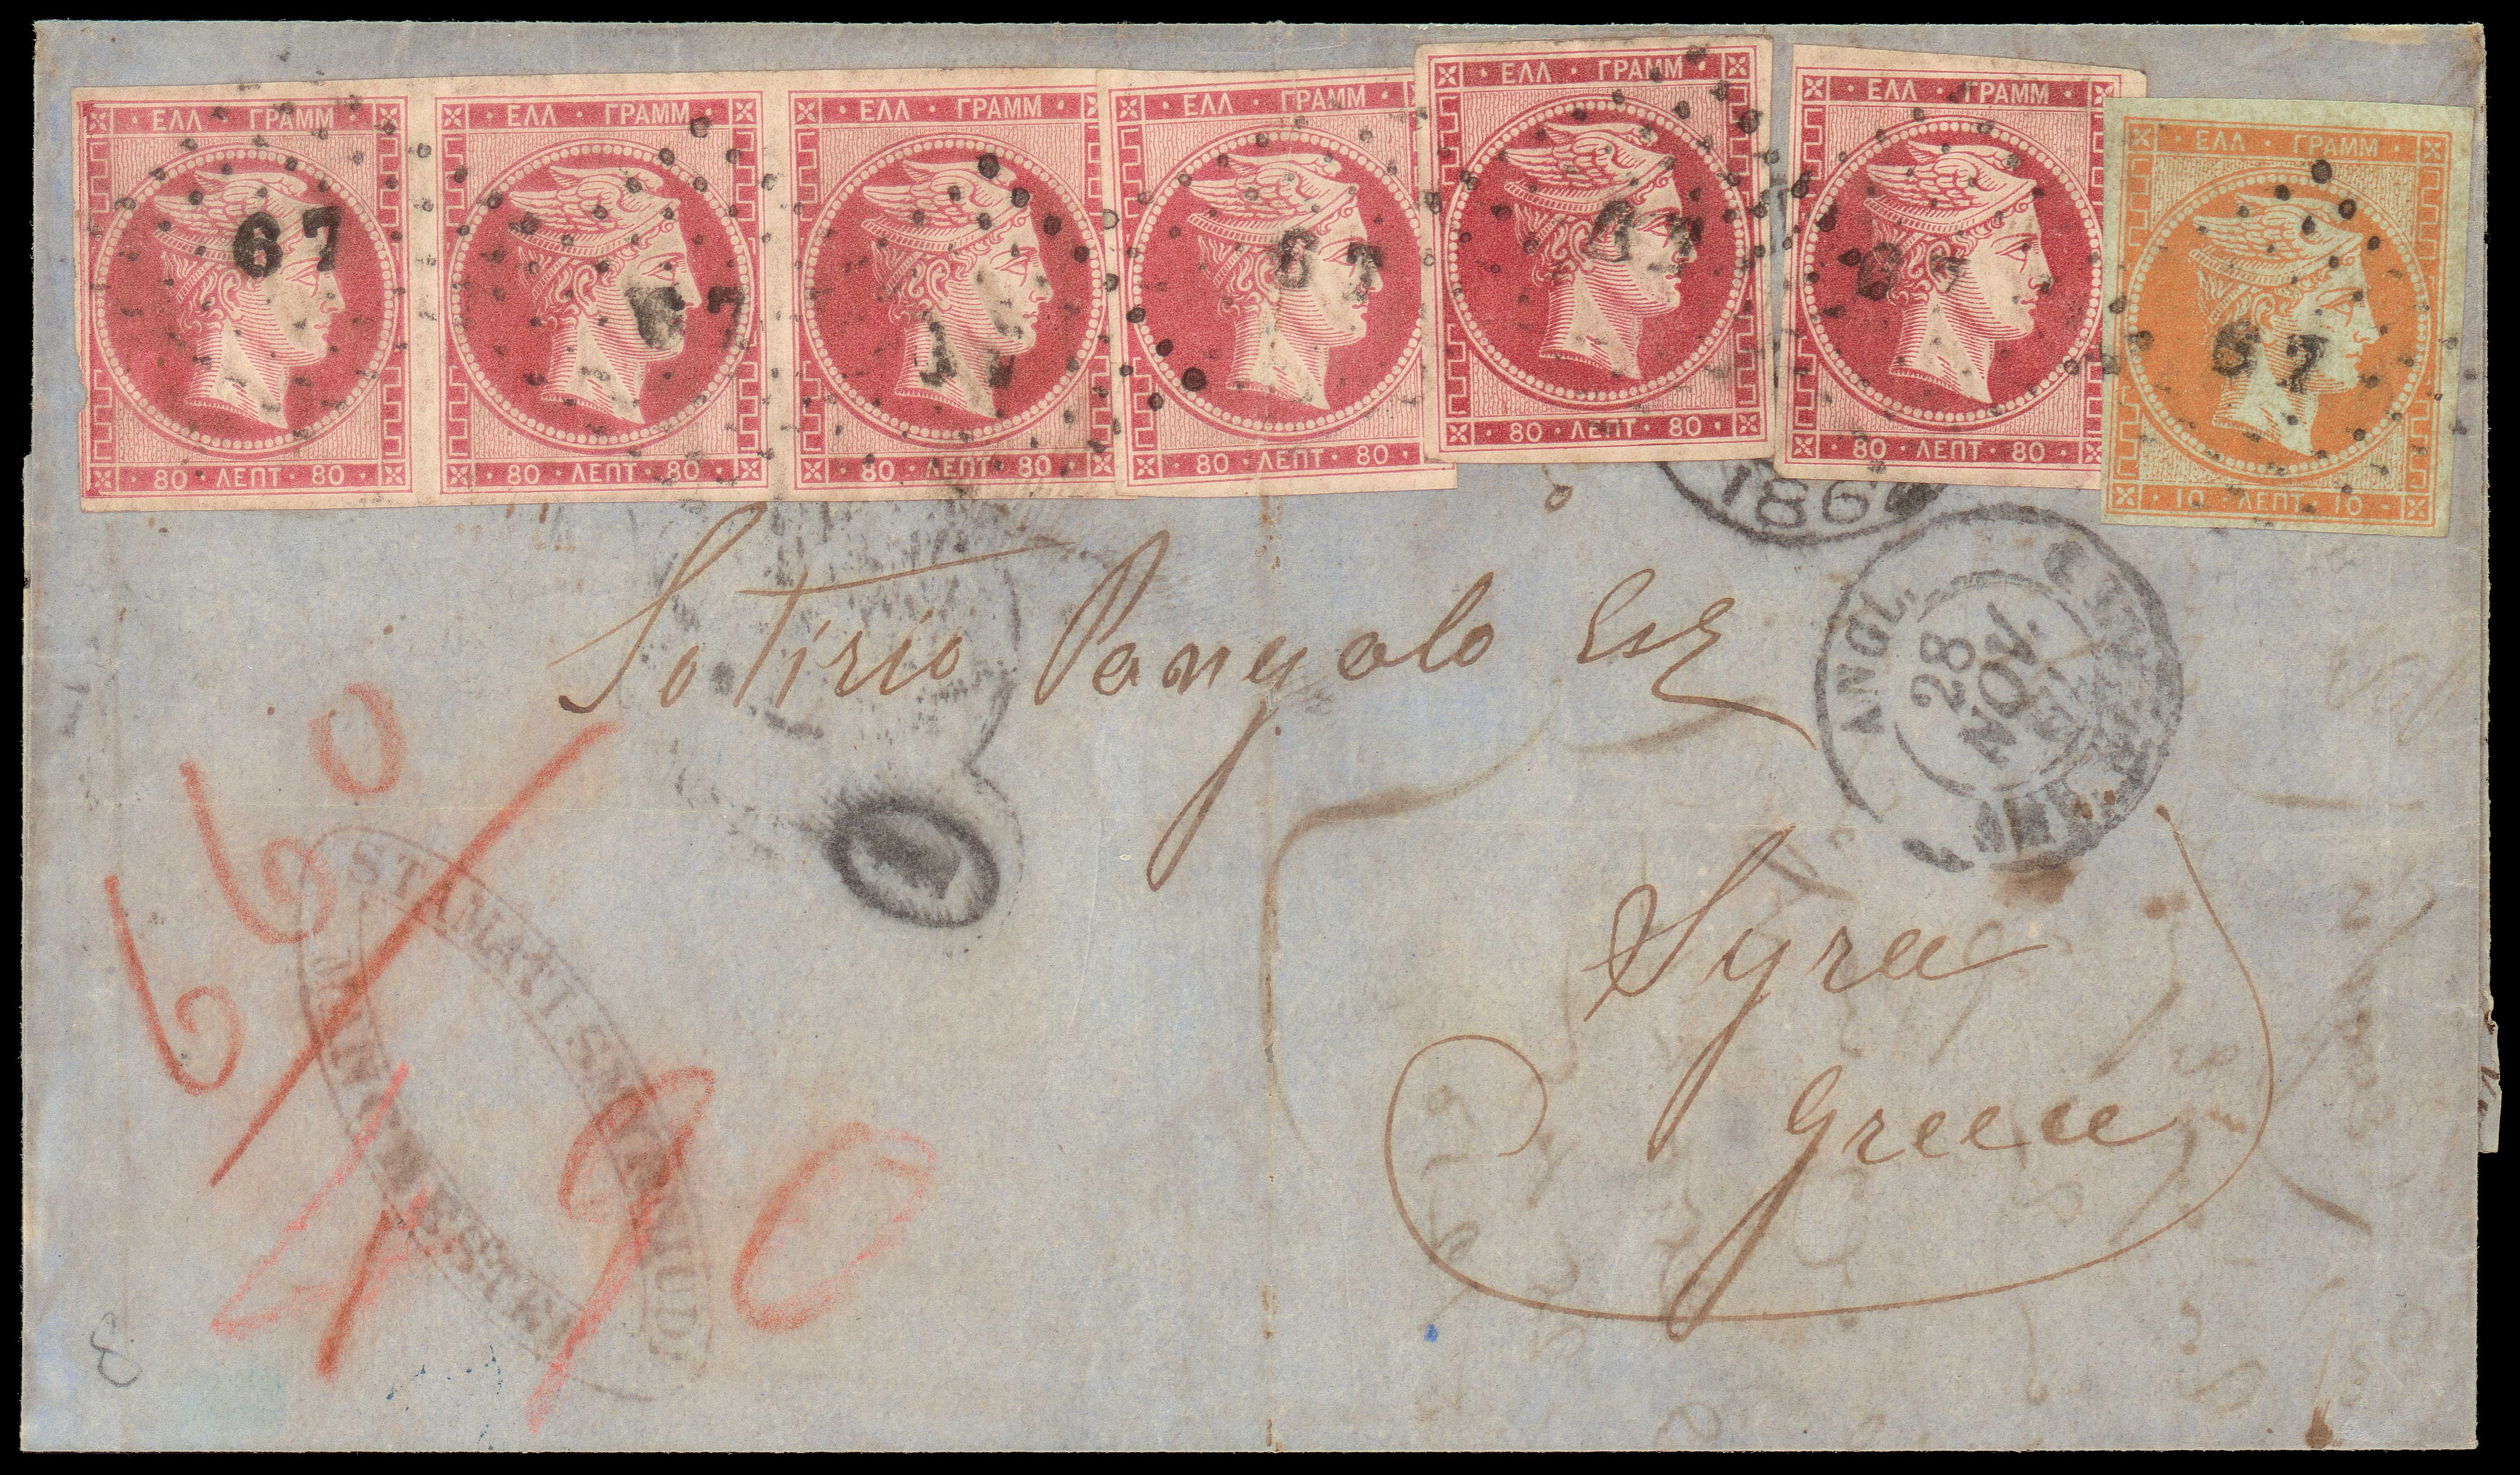 Lot 89 - -  LARGE HERMES HEAD 1861/1862 athens provisional printings -  A. Karamitsos Public & Live Internet Auction 666 Large Hermes Heads Exceptional Stamps from Great Collections